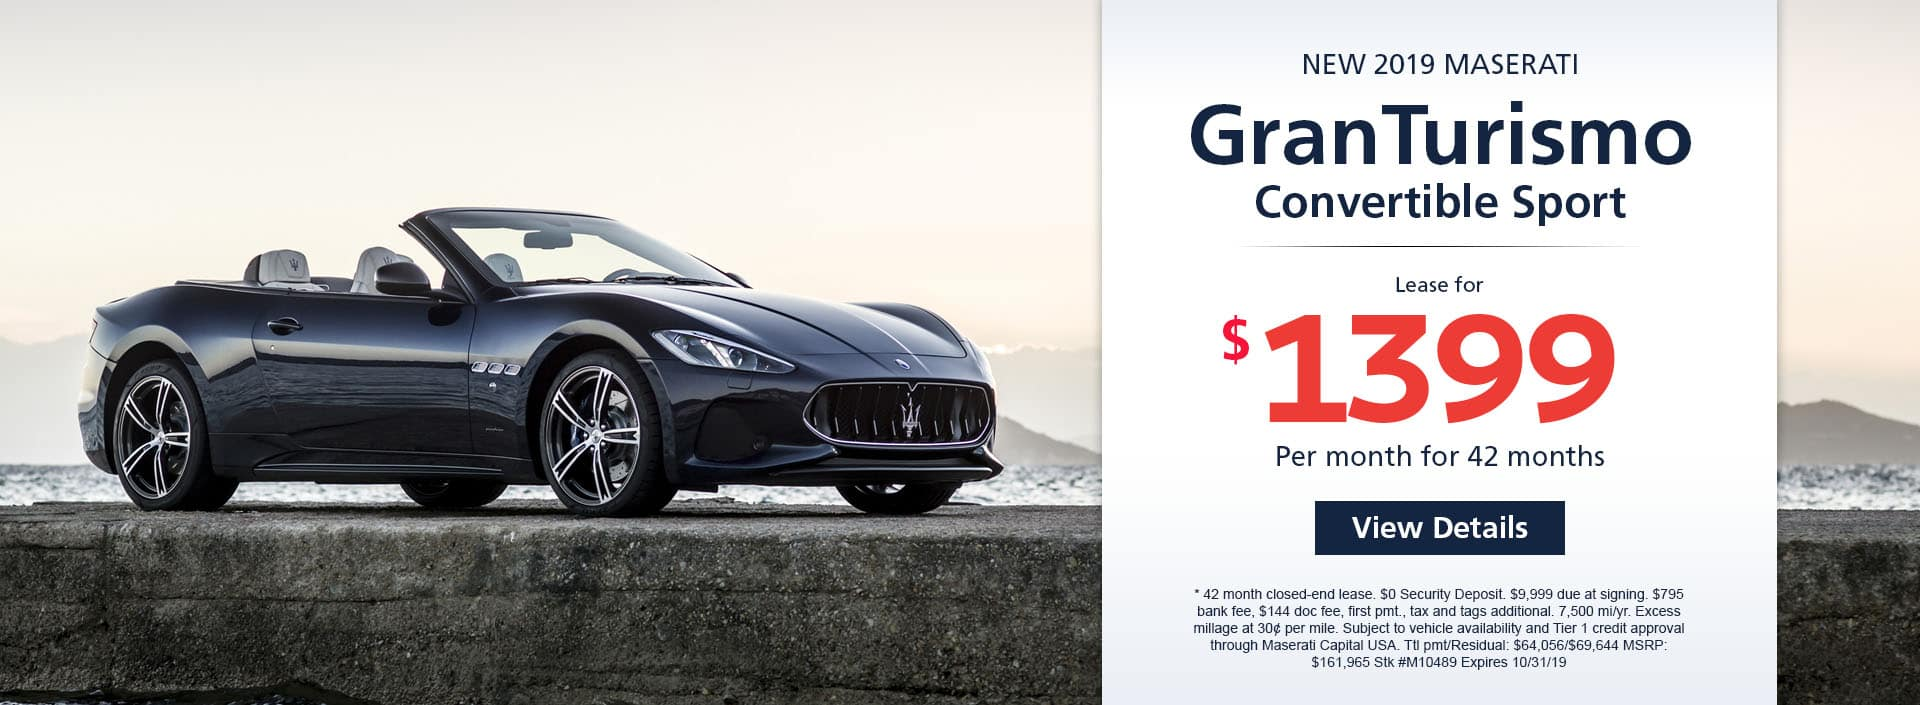 Lease a new 2019 Maserati GranTurismo Convertible Sport for $1,399 a month for 42 months.